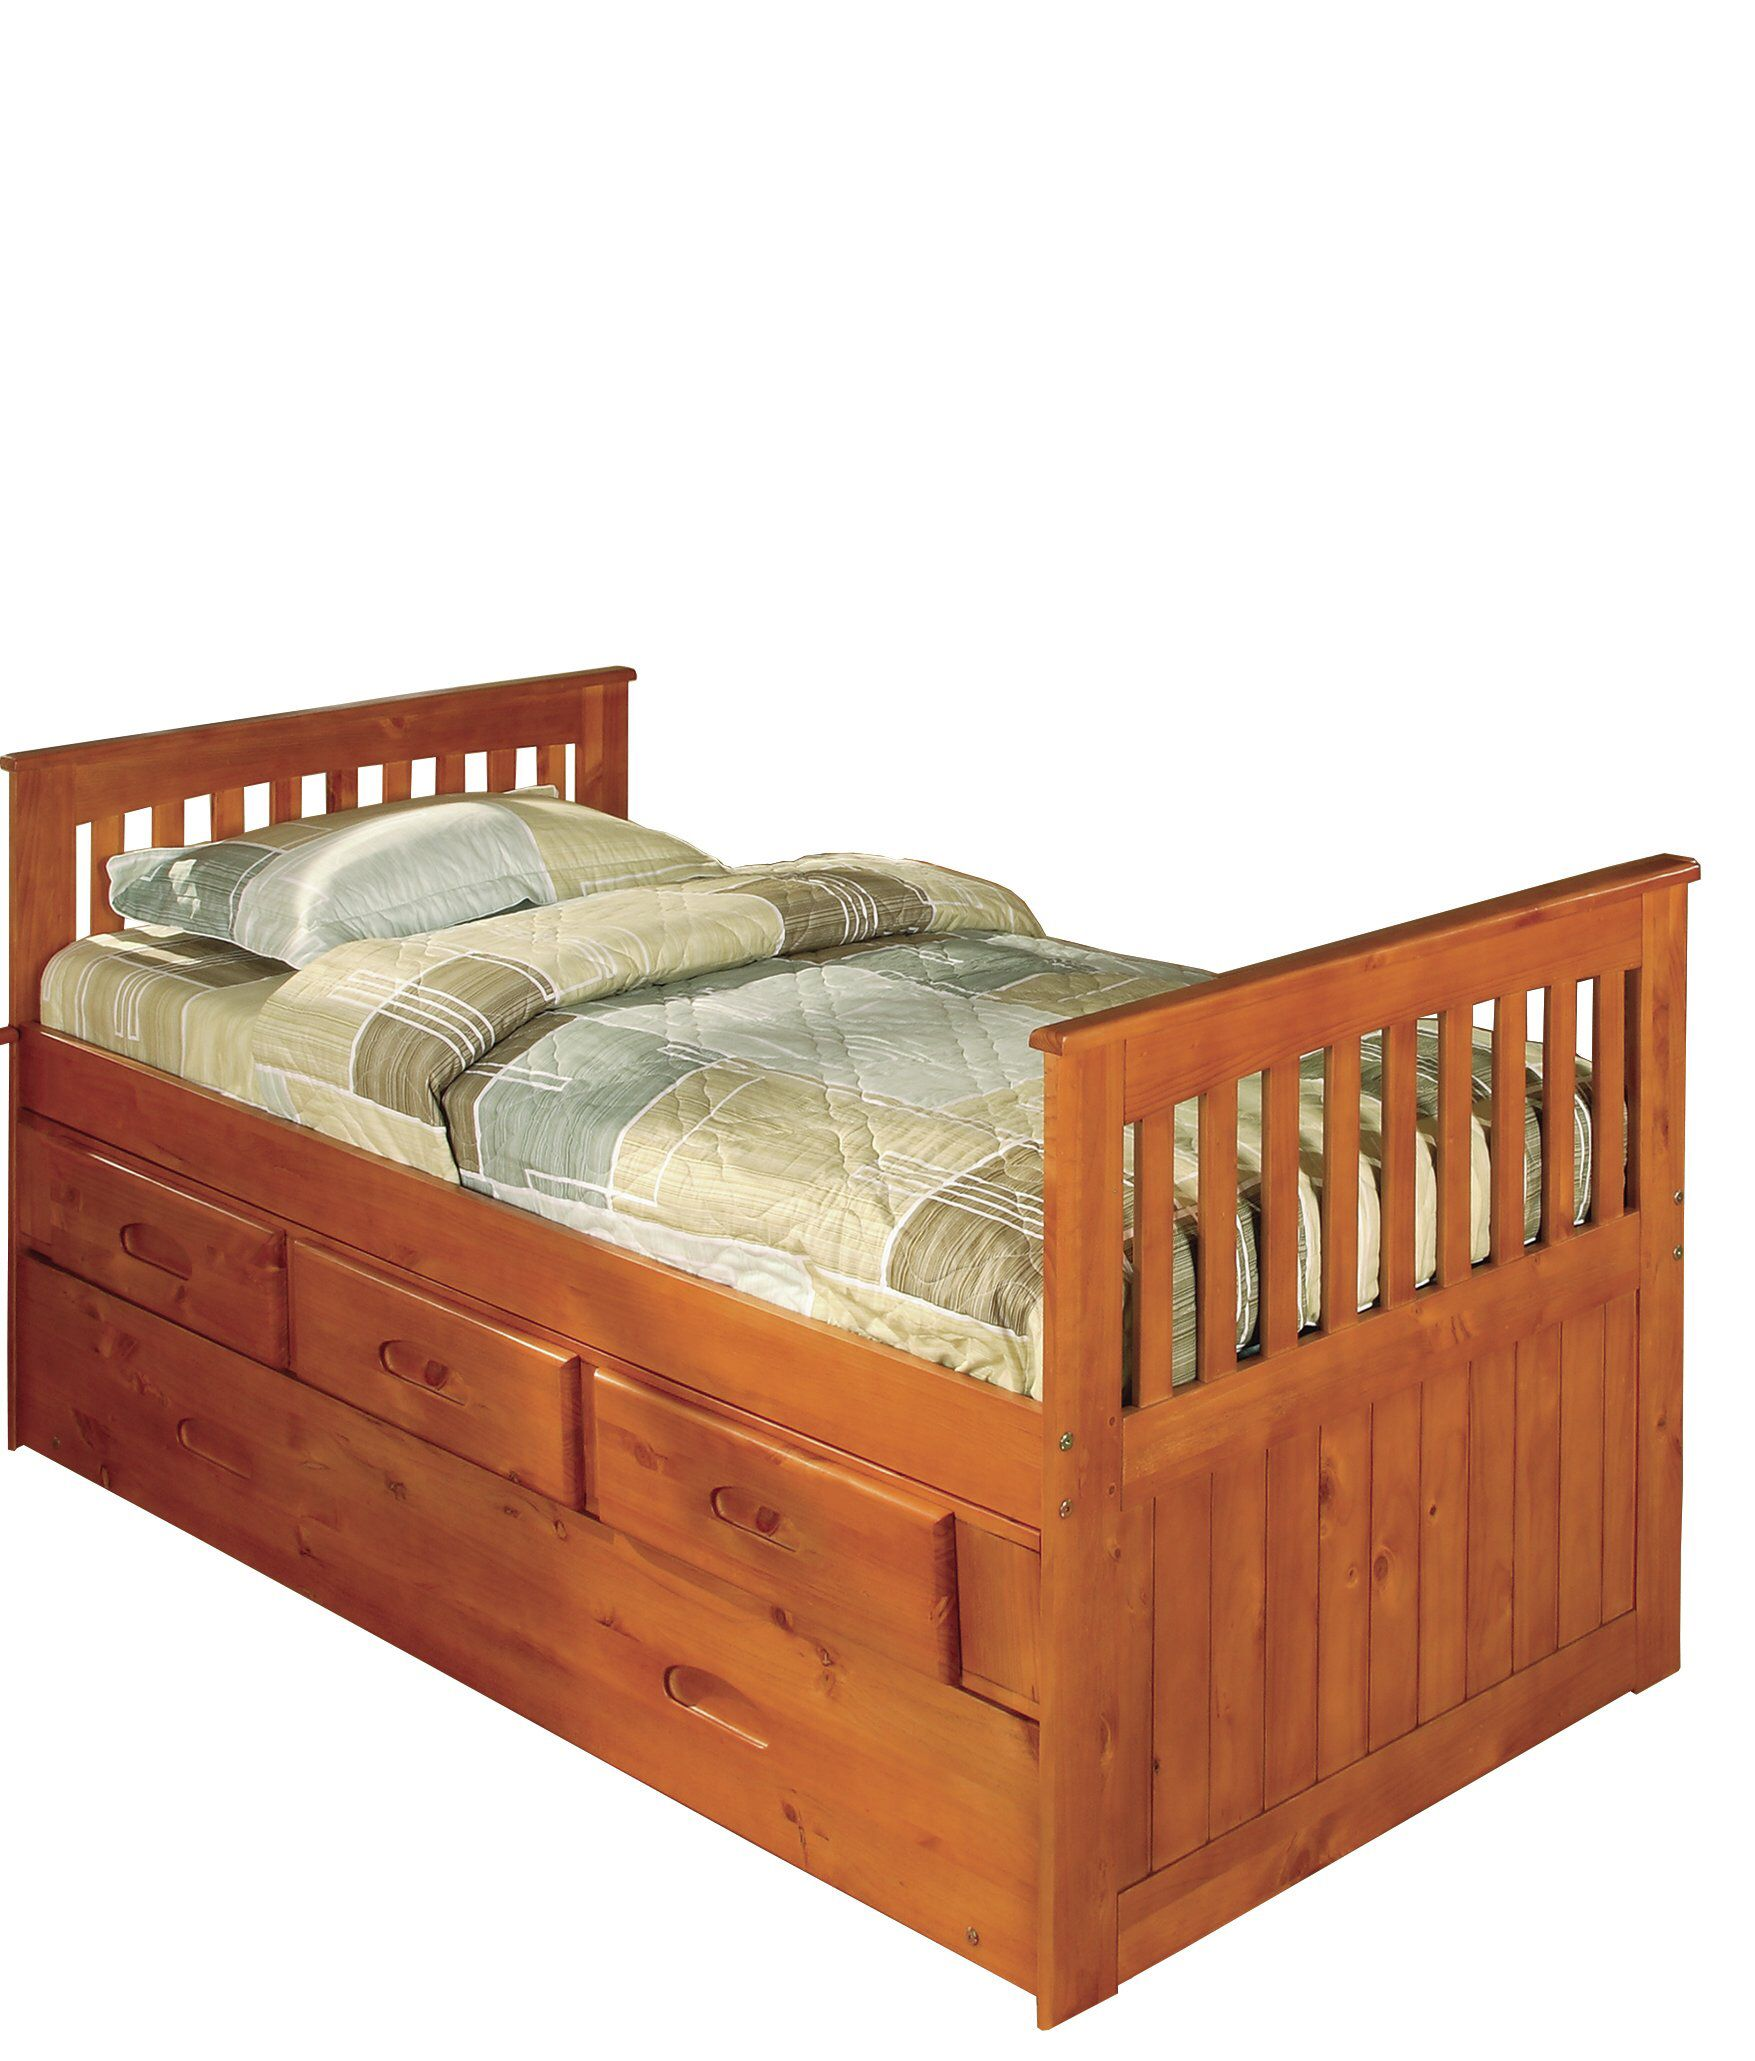 Trumble Twin Sleigh Bed With Drawers Furniture Trundle Bed Daybed With Trundle